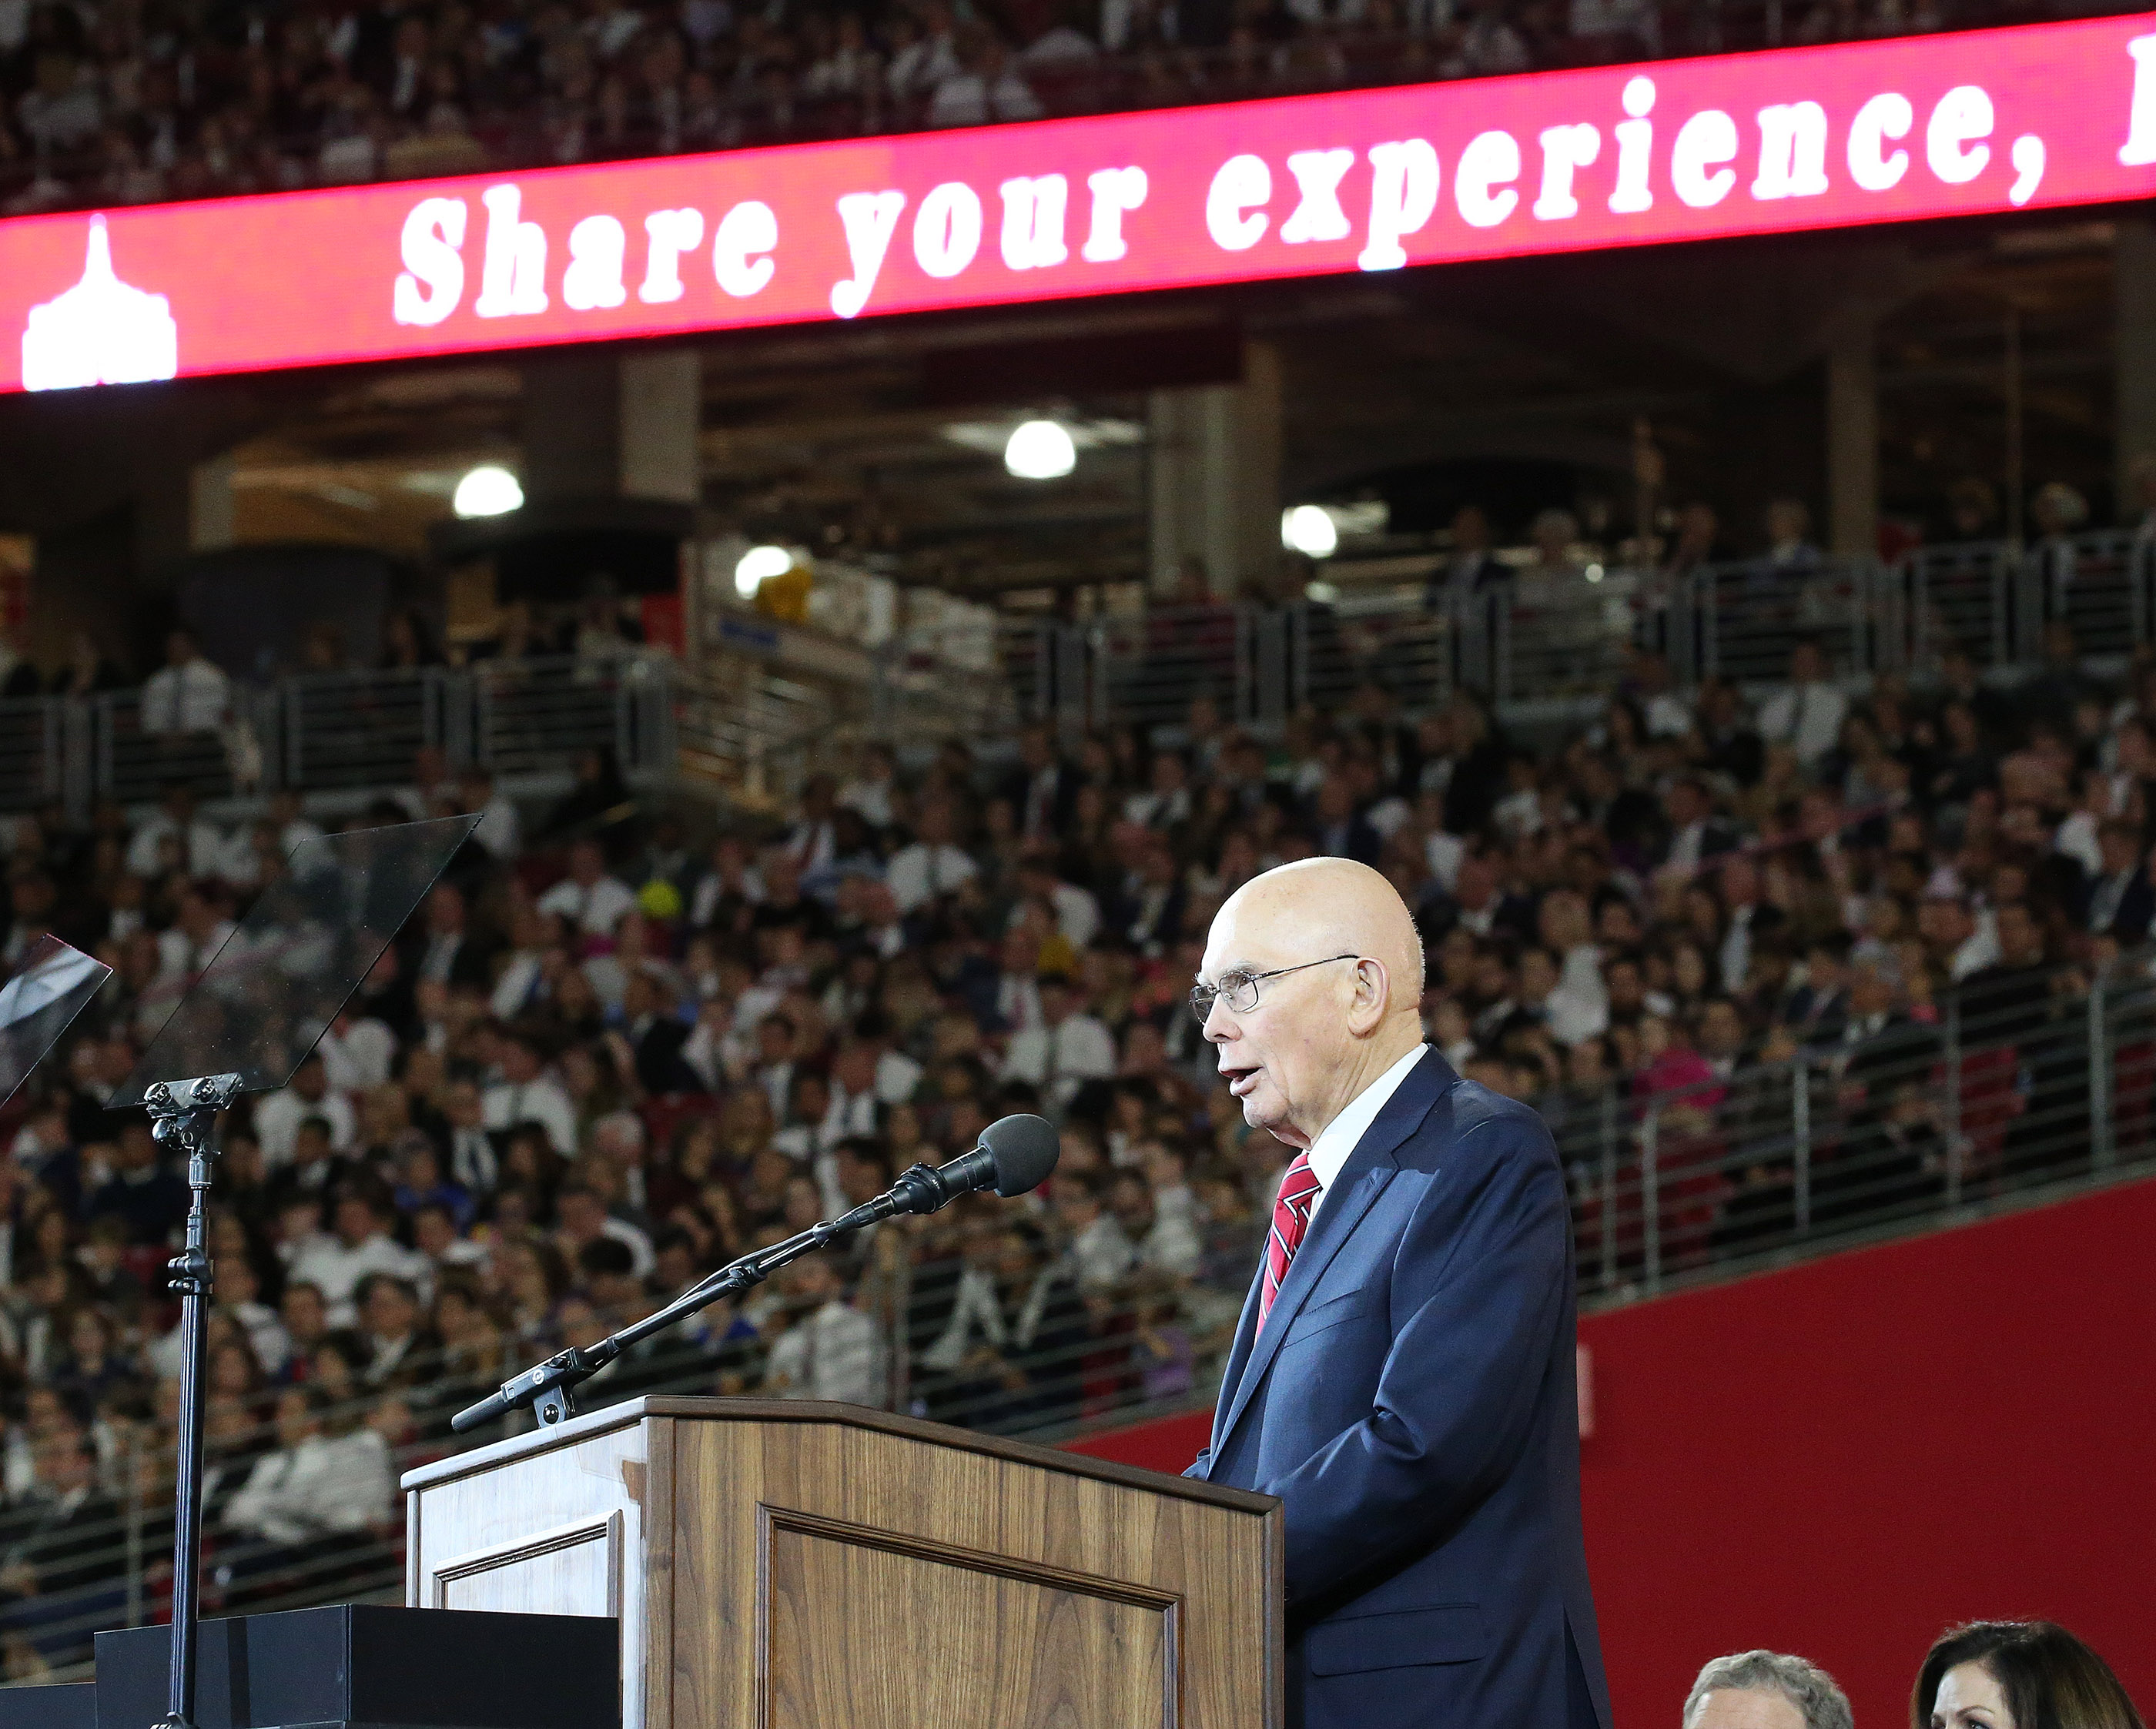 President Dallin H. Oaks, first counselor in the First Presidency of The Church of Jesus Christ of Latter-day Saints speaks during a devotional at the State Farm Stadium in Phoenix on Sunday, Feb. 10, 2019.